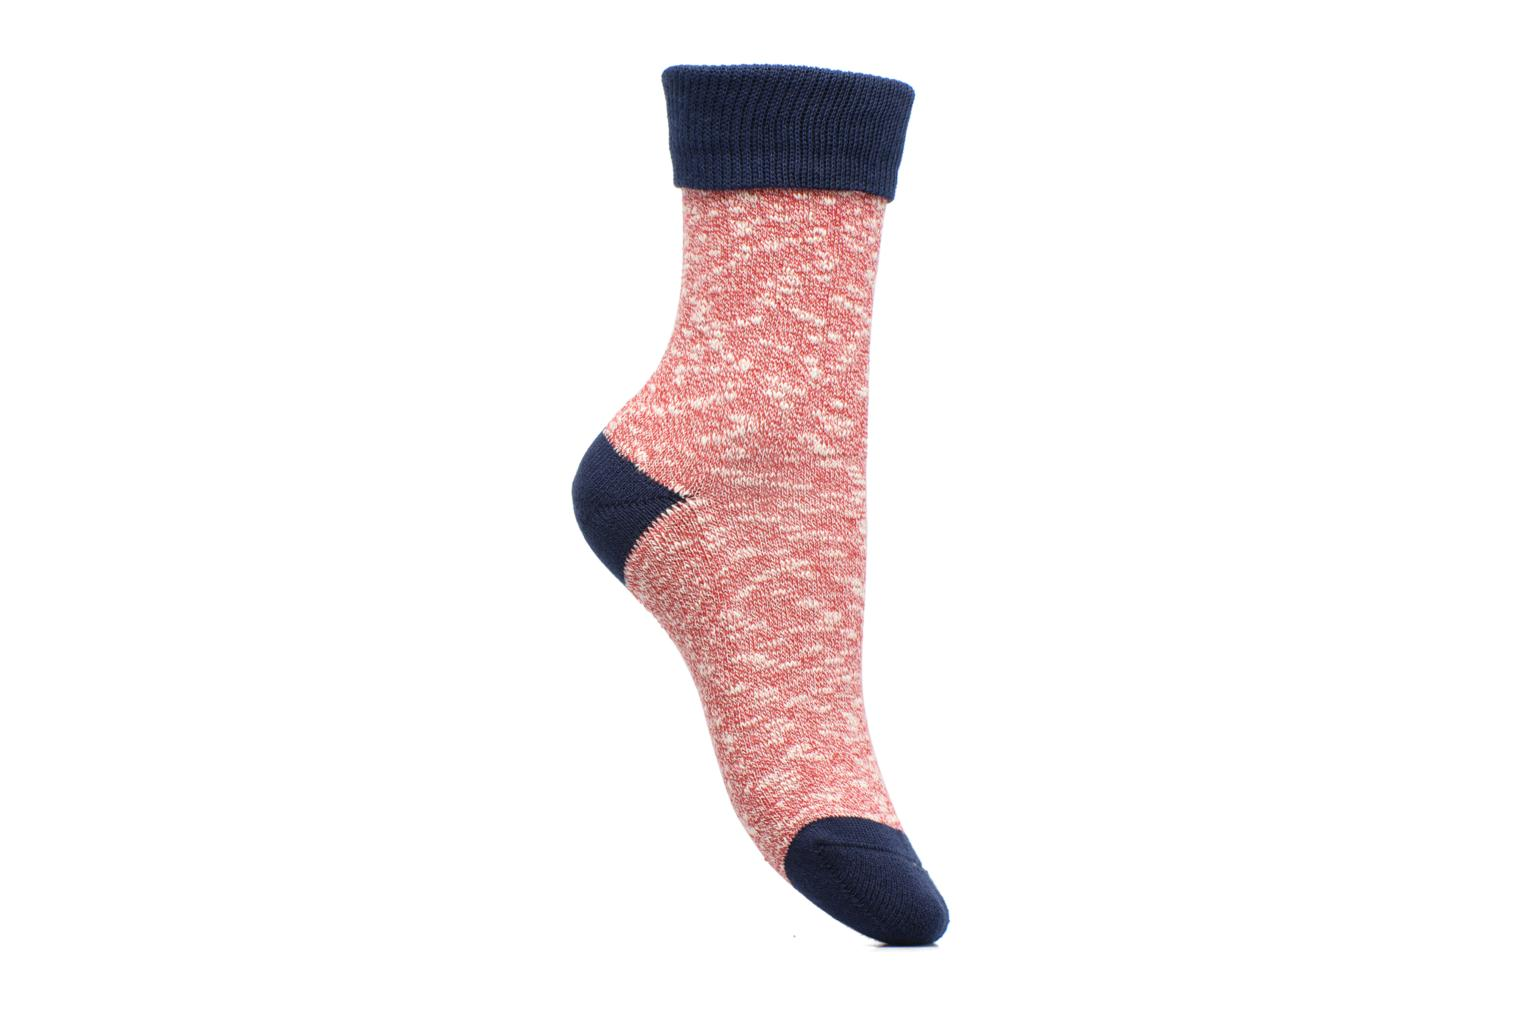 Chaussettes Femme Cocooning Coton Rouge / Marine